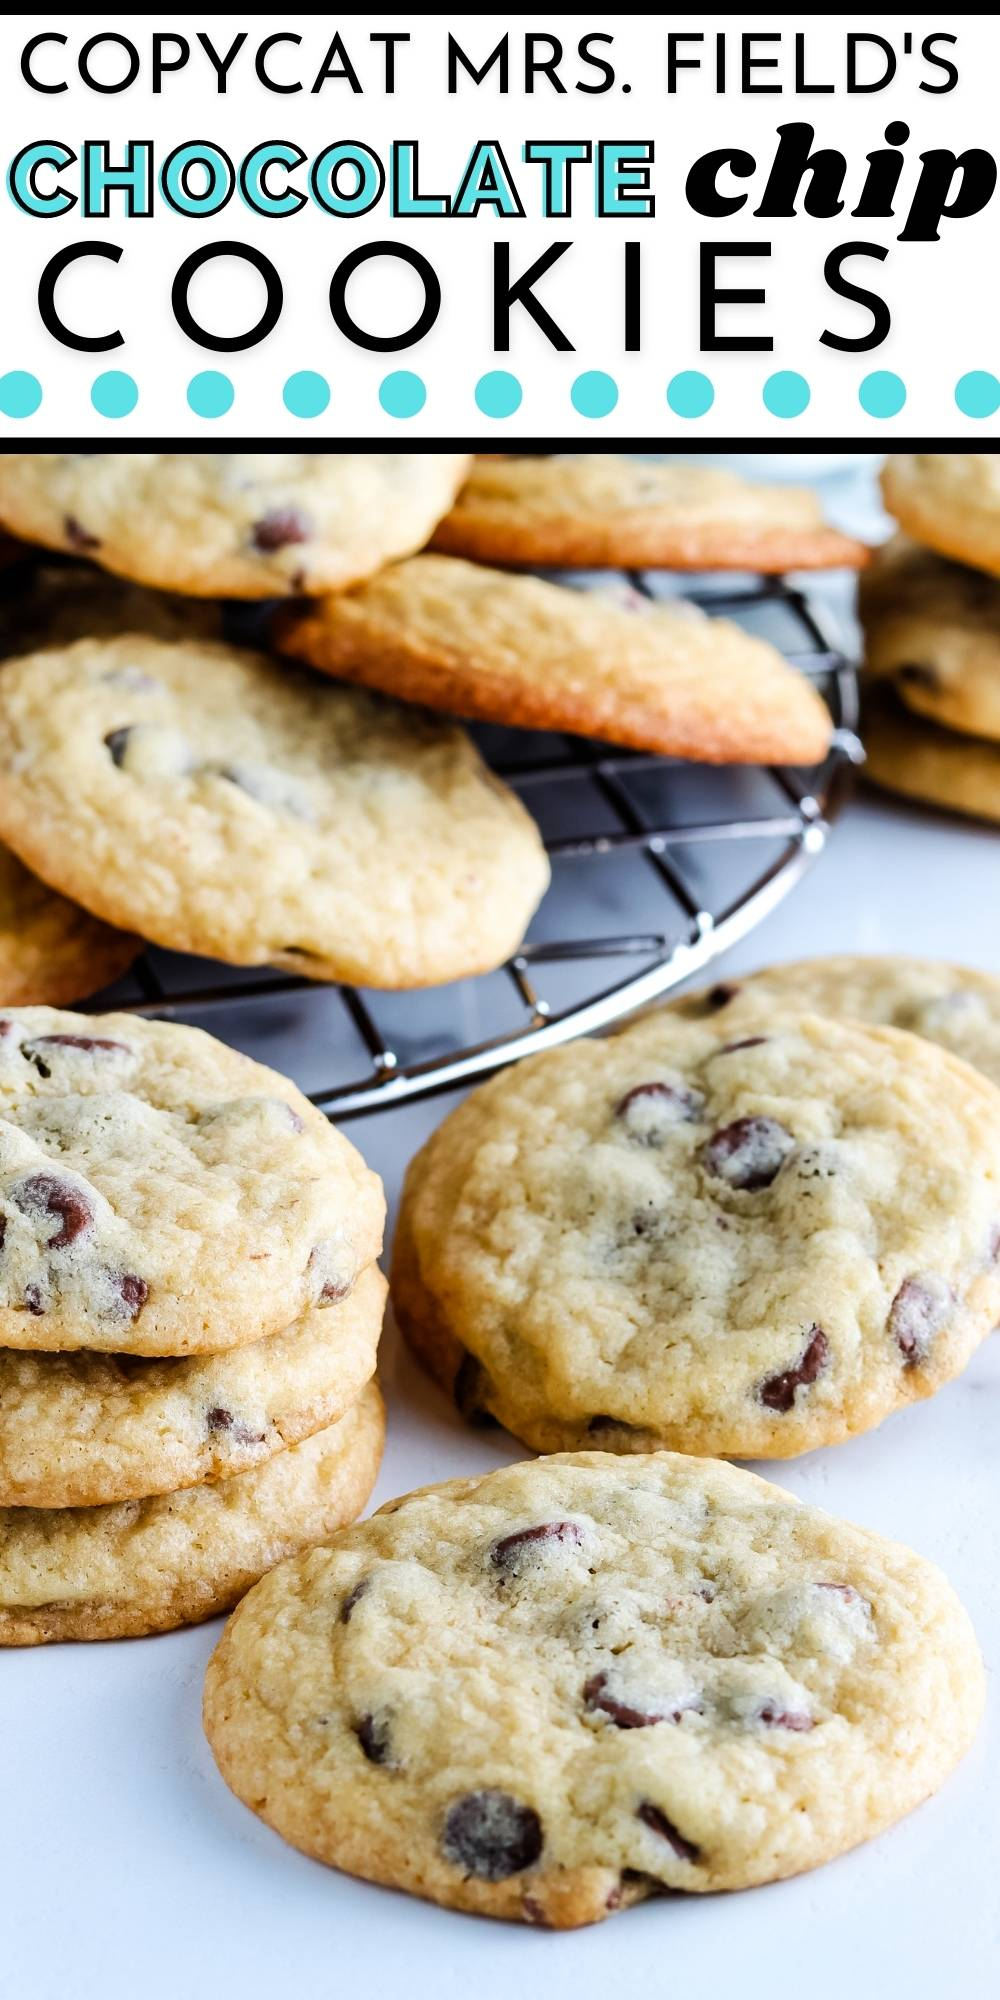 These Copycat Mrs. Fields Chocolate Chip Cookies have crisp edges, soft centers and are easy to make. This recipe will save you money and a trip to the mall! via @easybudgetrecipes